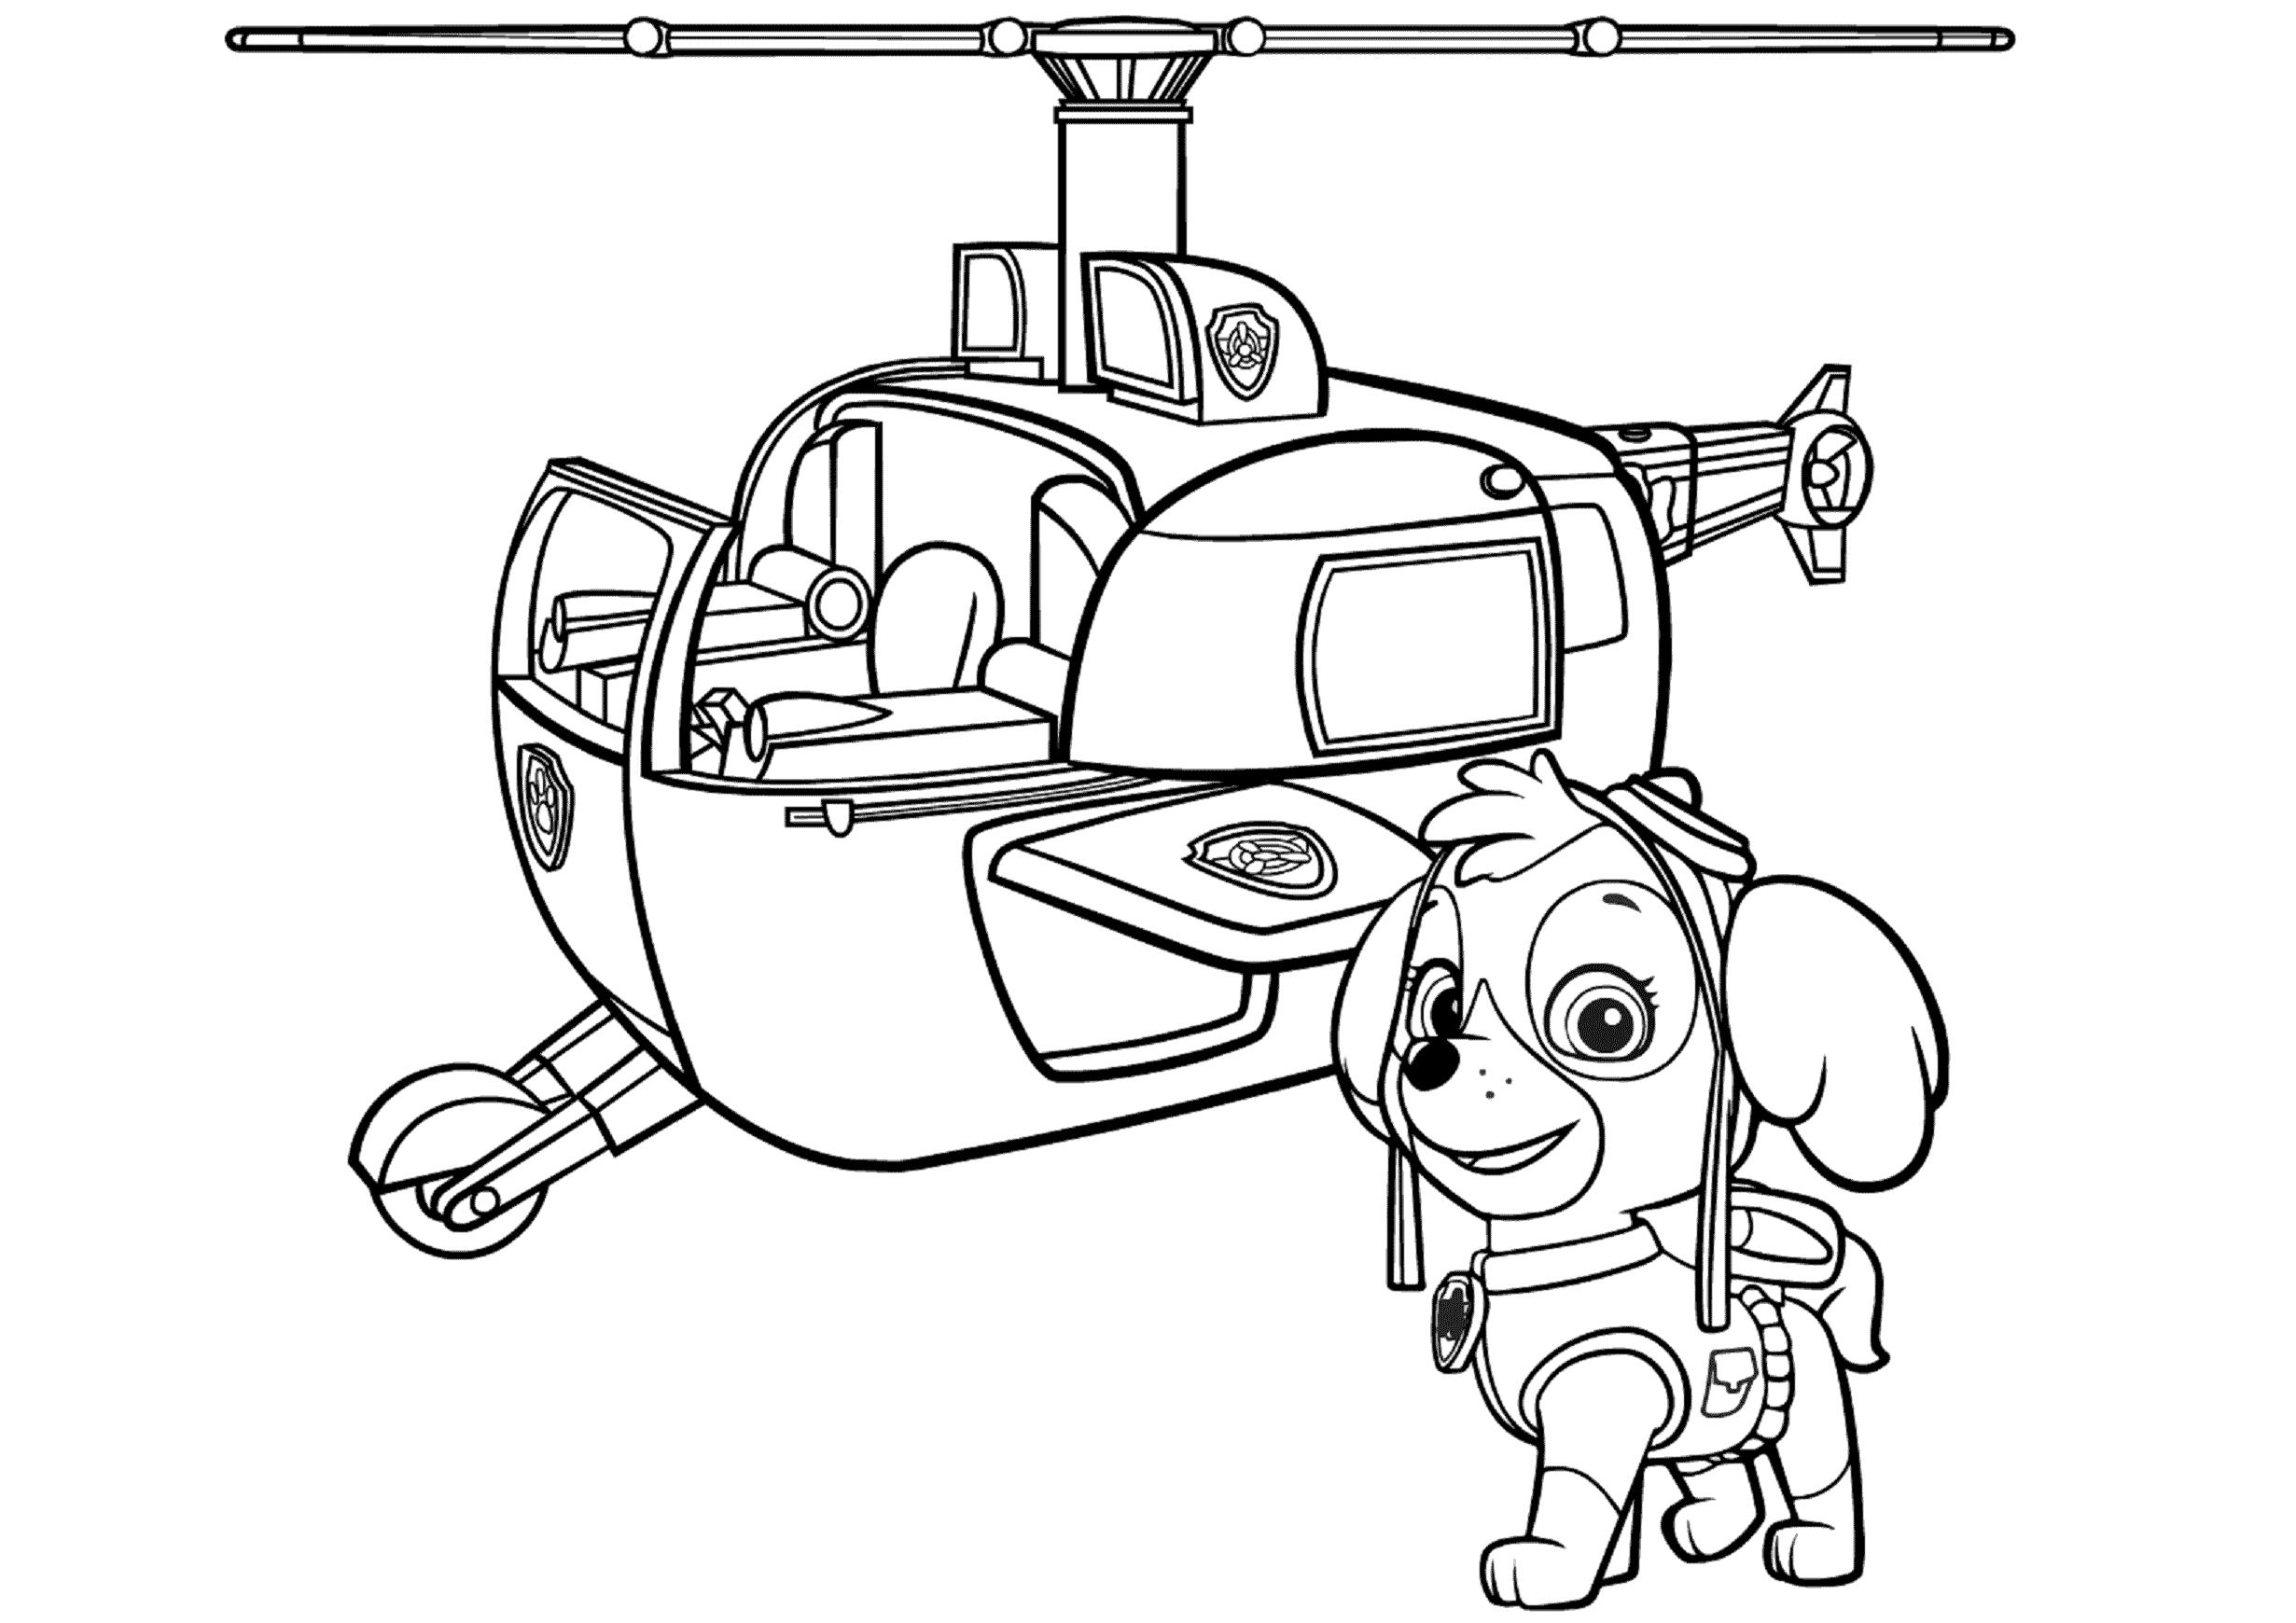 paw patrol for coloring paw patrol merry christmas coloring page tsgoscom for paw coloring patrol